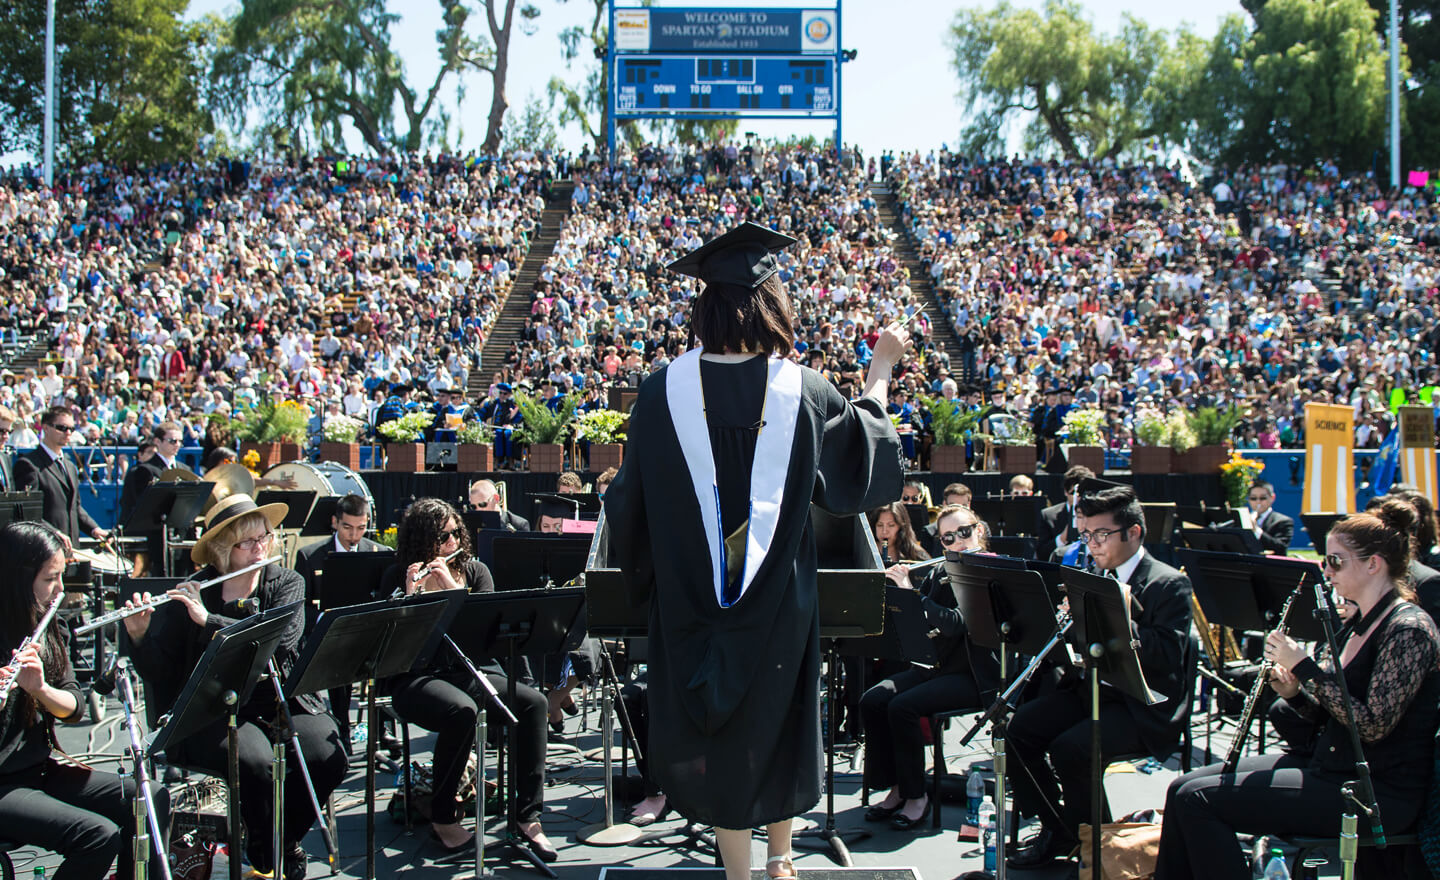 sjsu music students perform during commencement.